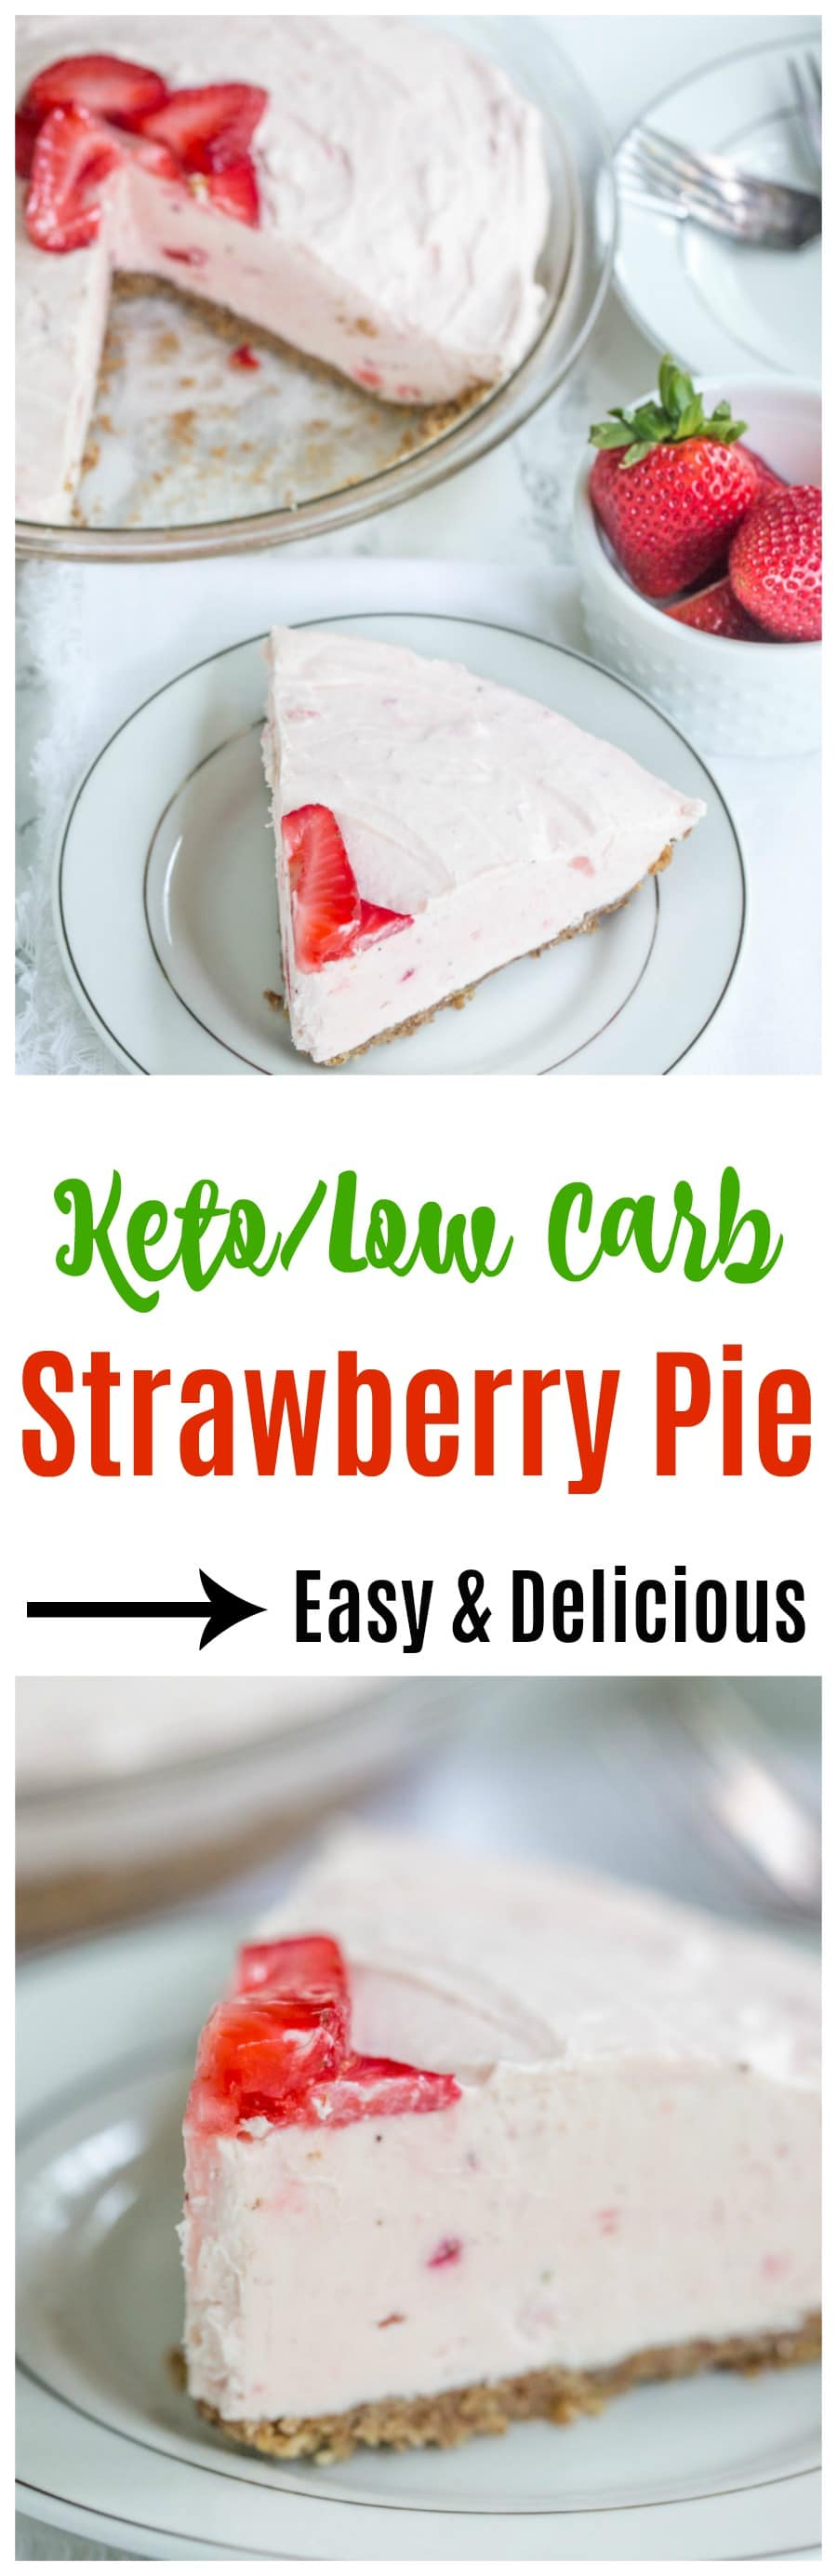 Keto Friendly Easy Strawberry Pie Recipe is a great option for dessert that is ready in no time! So simple to make and full of flavor without the carbs!